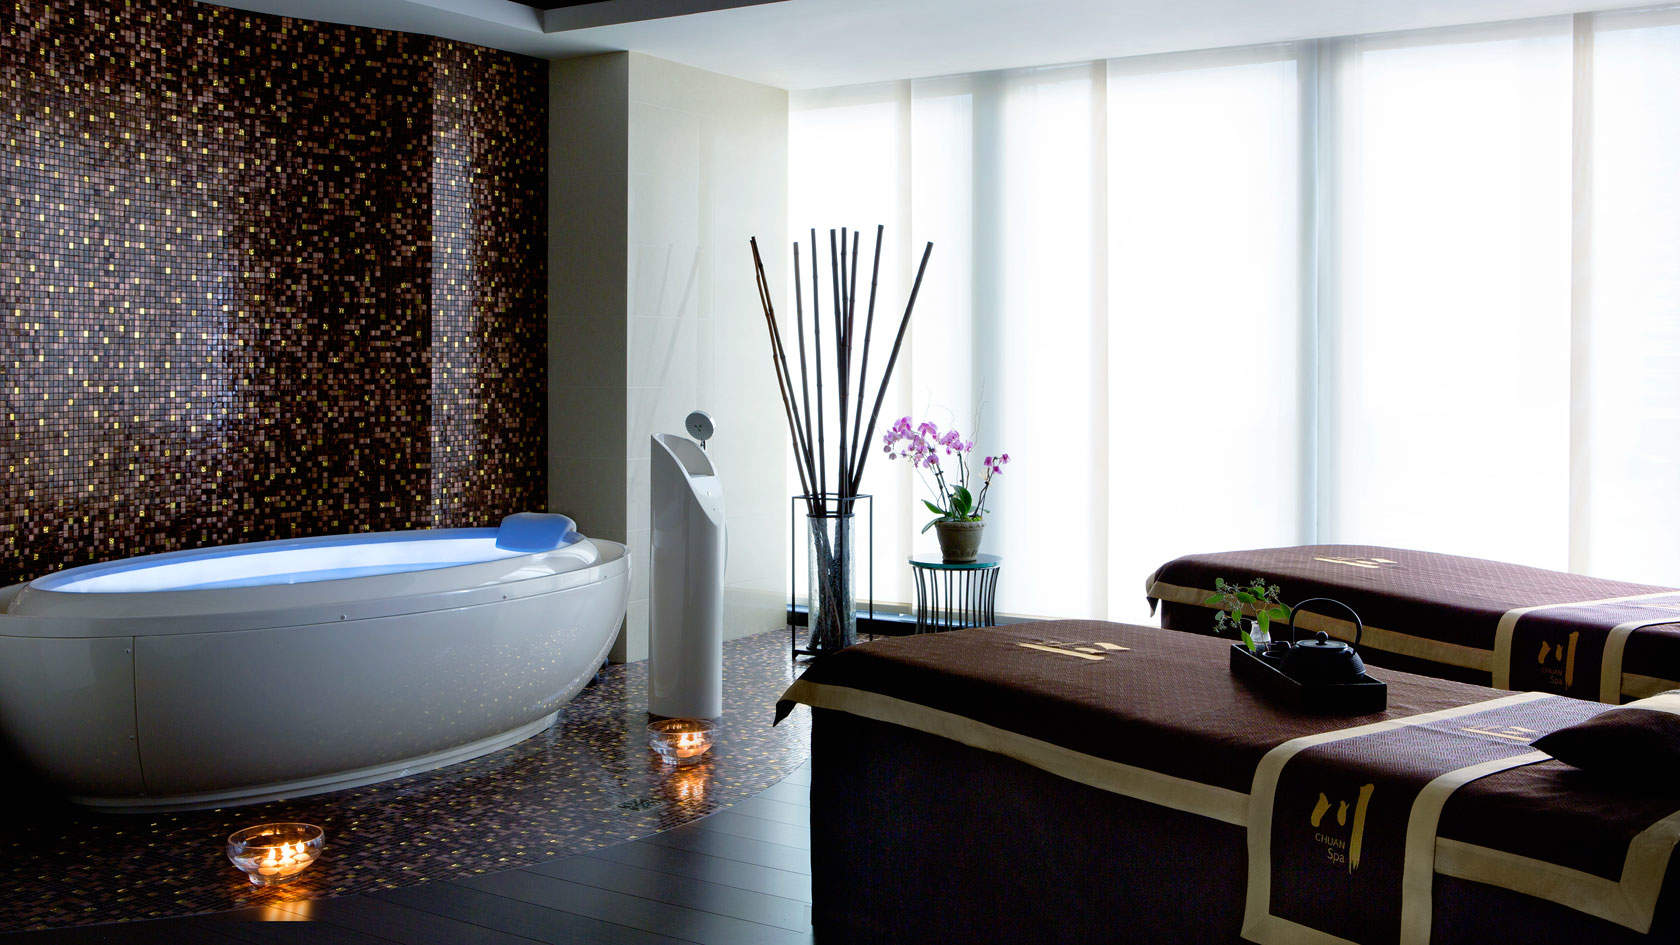 Hotels With Jacuzzi In Room In Boston